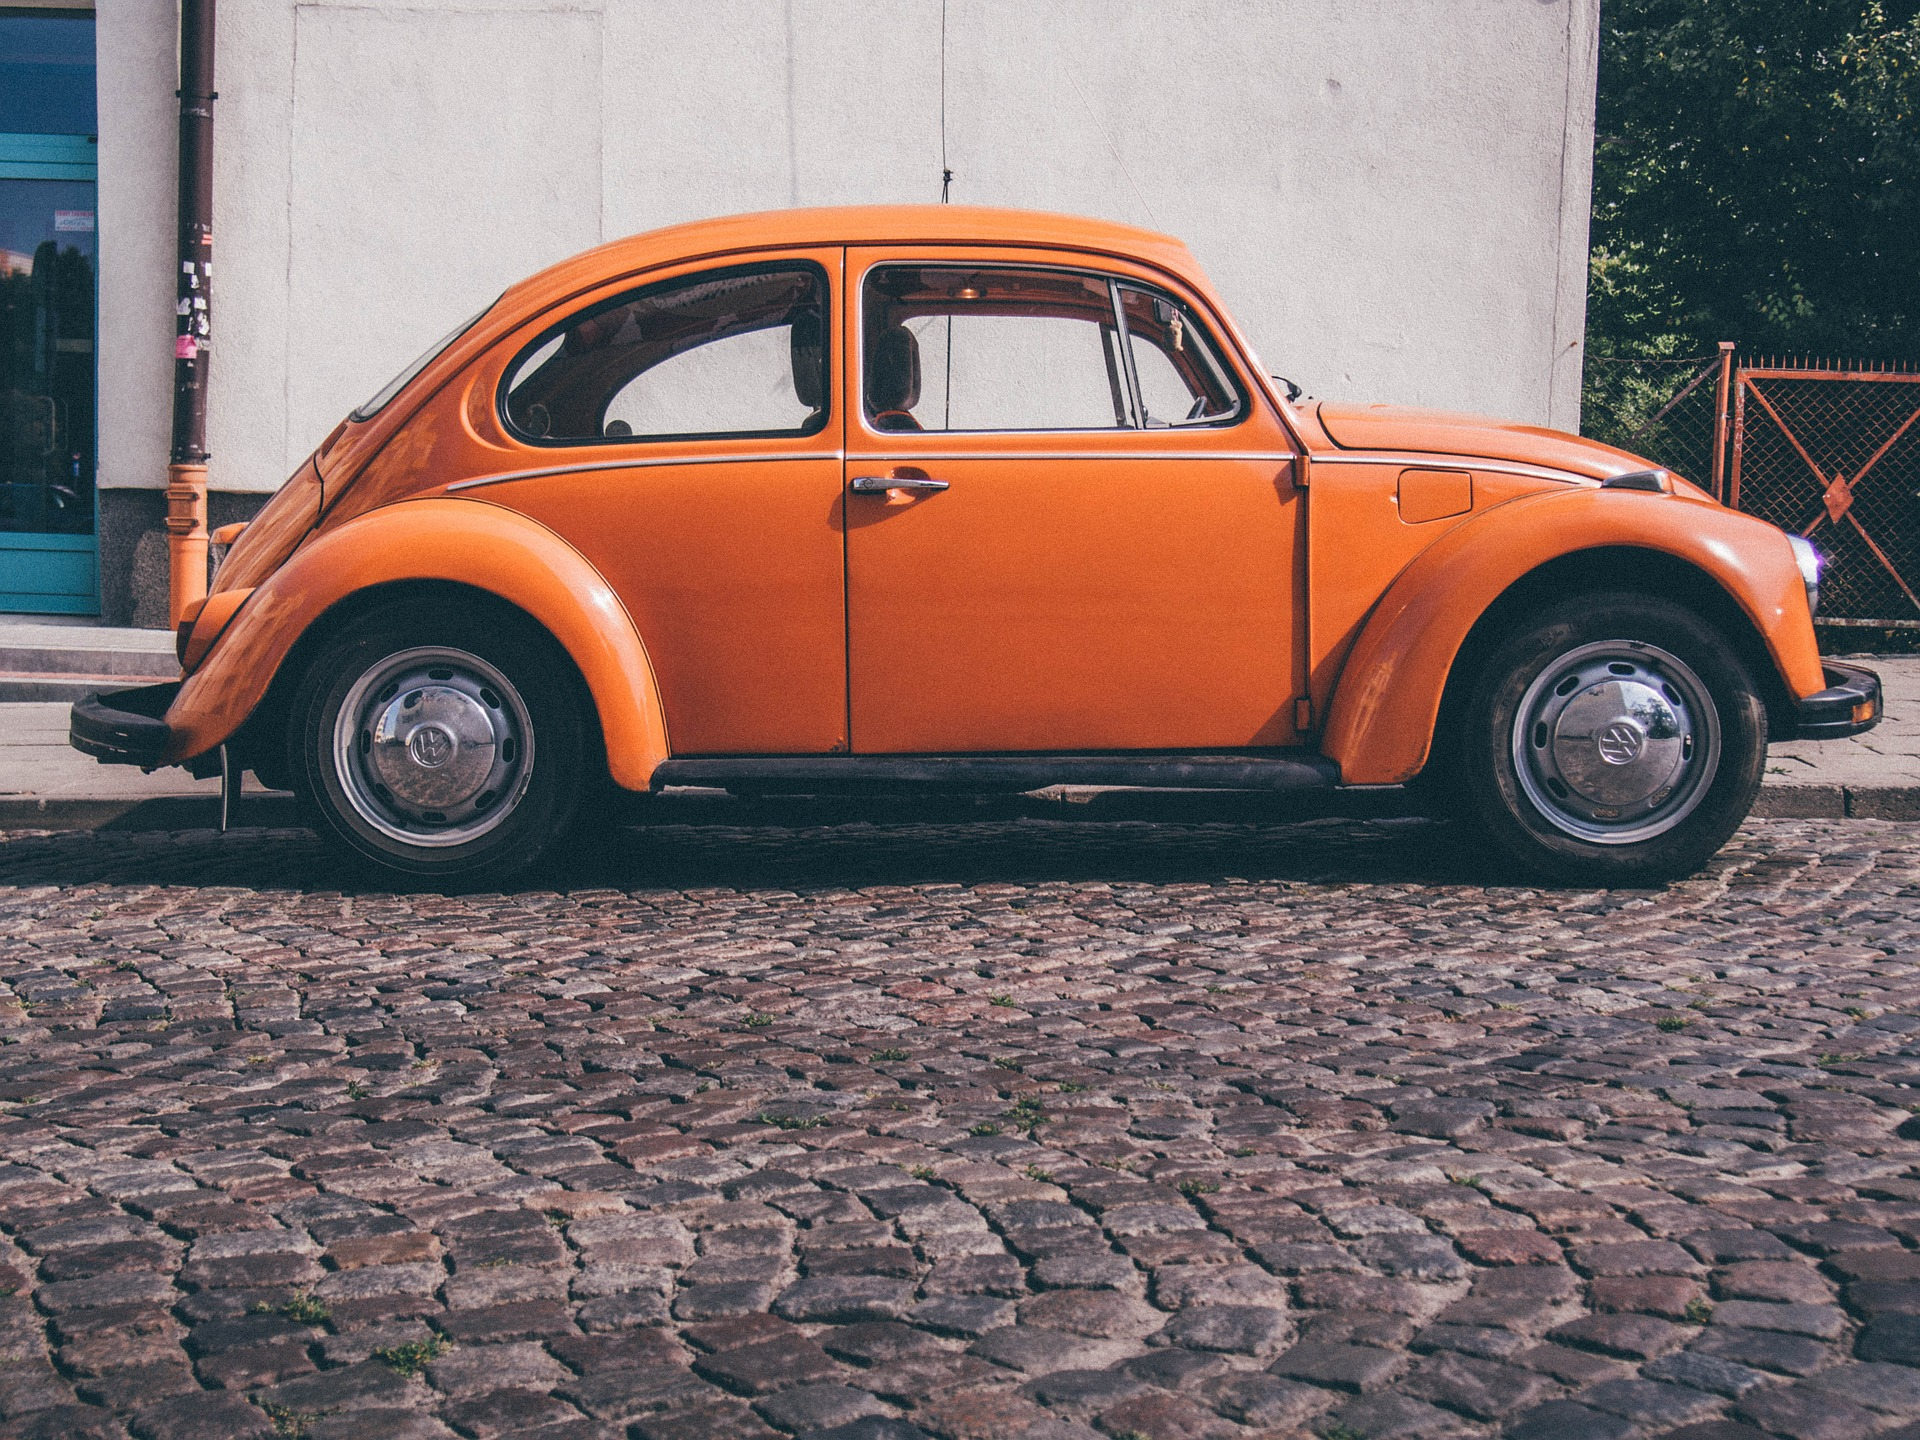 What to Know About Buying a Car at Auction - Hodgins Auctioneers